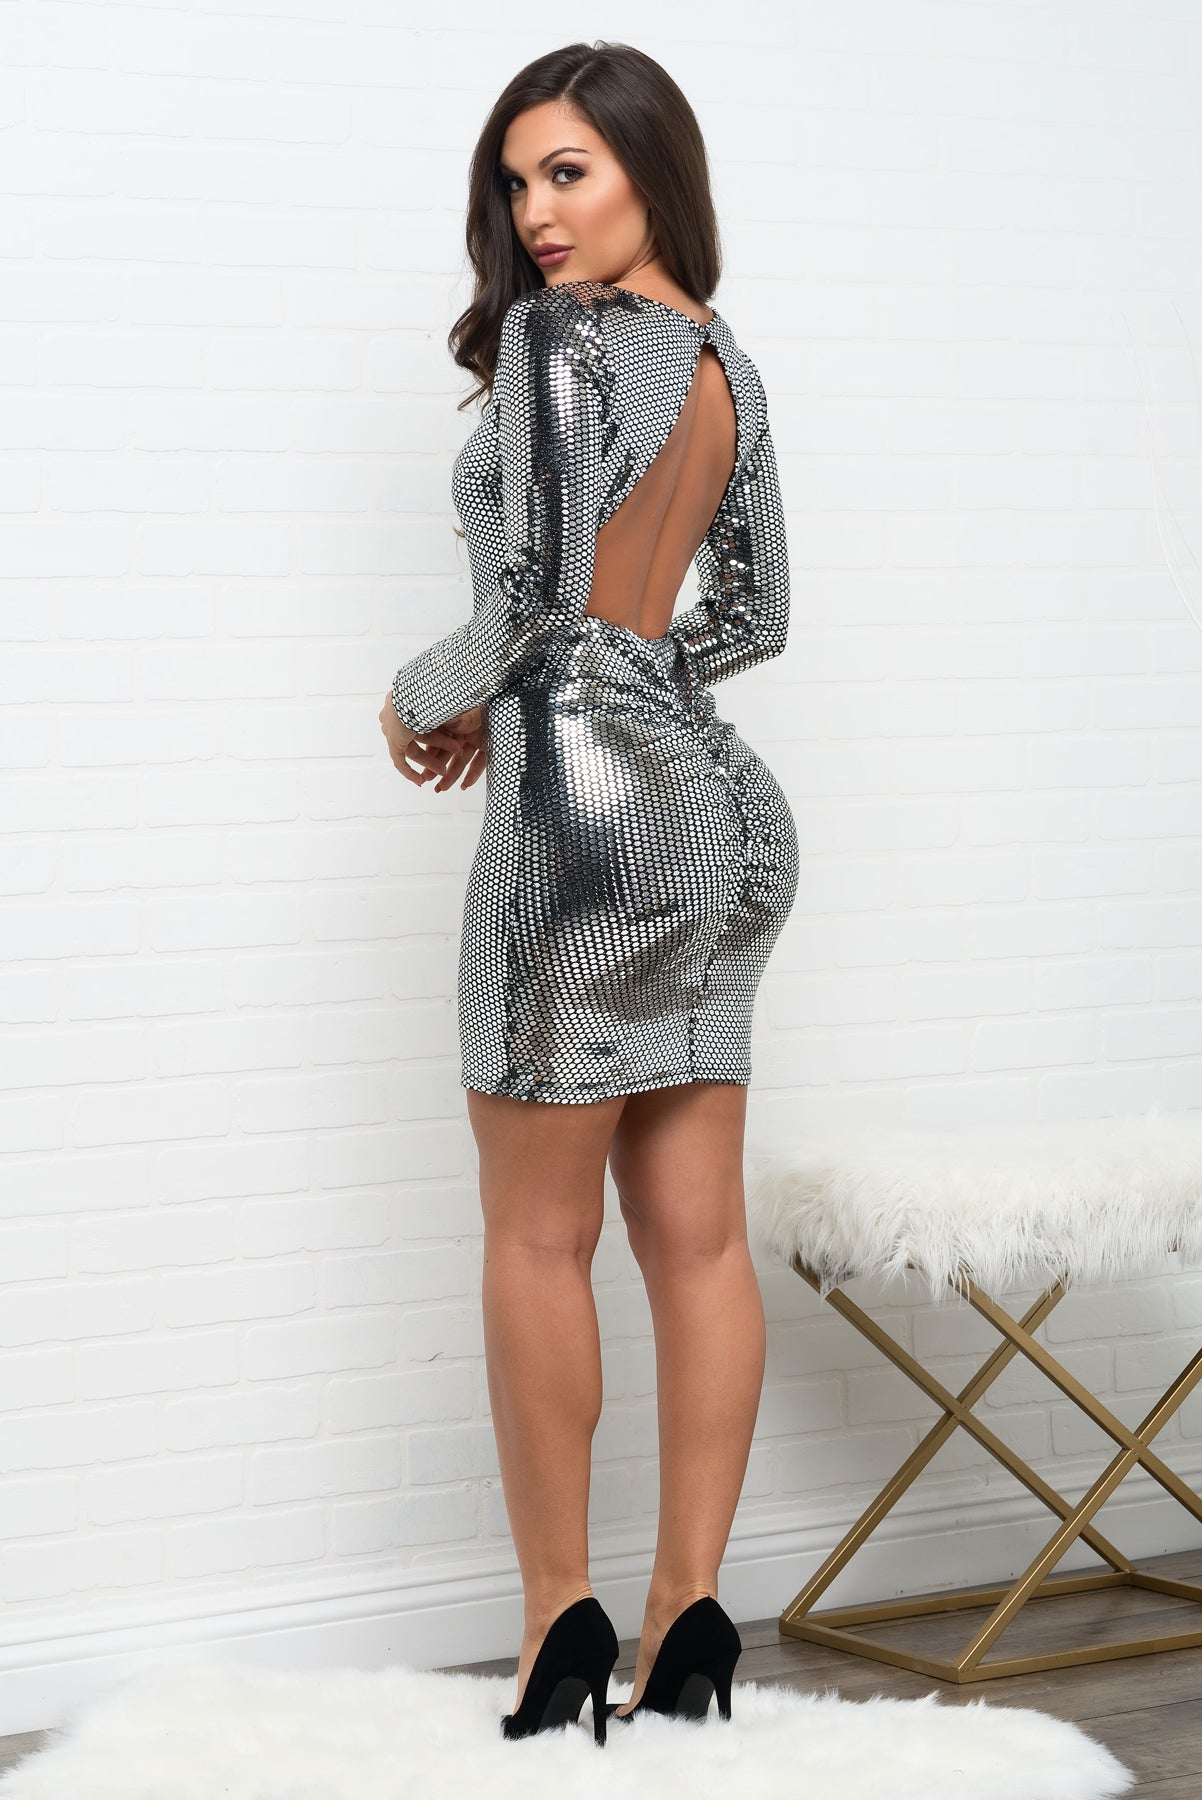 Pyper Sequin Dress - Silver